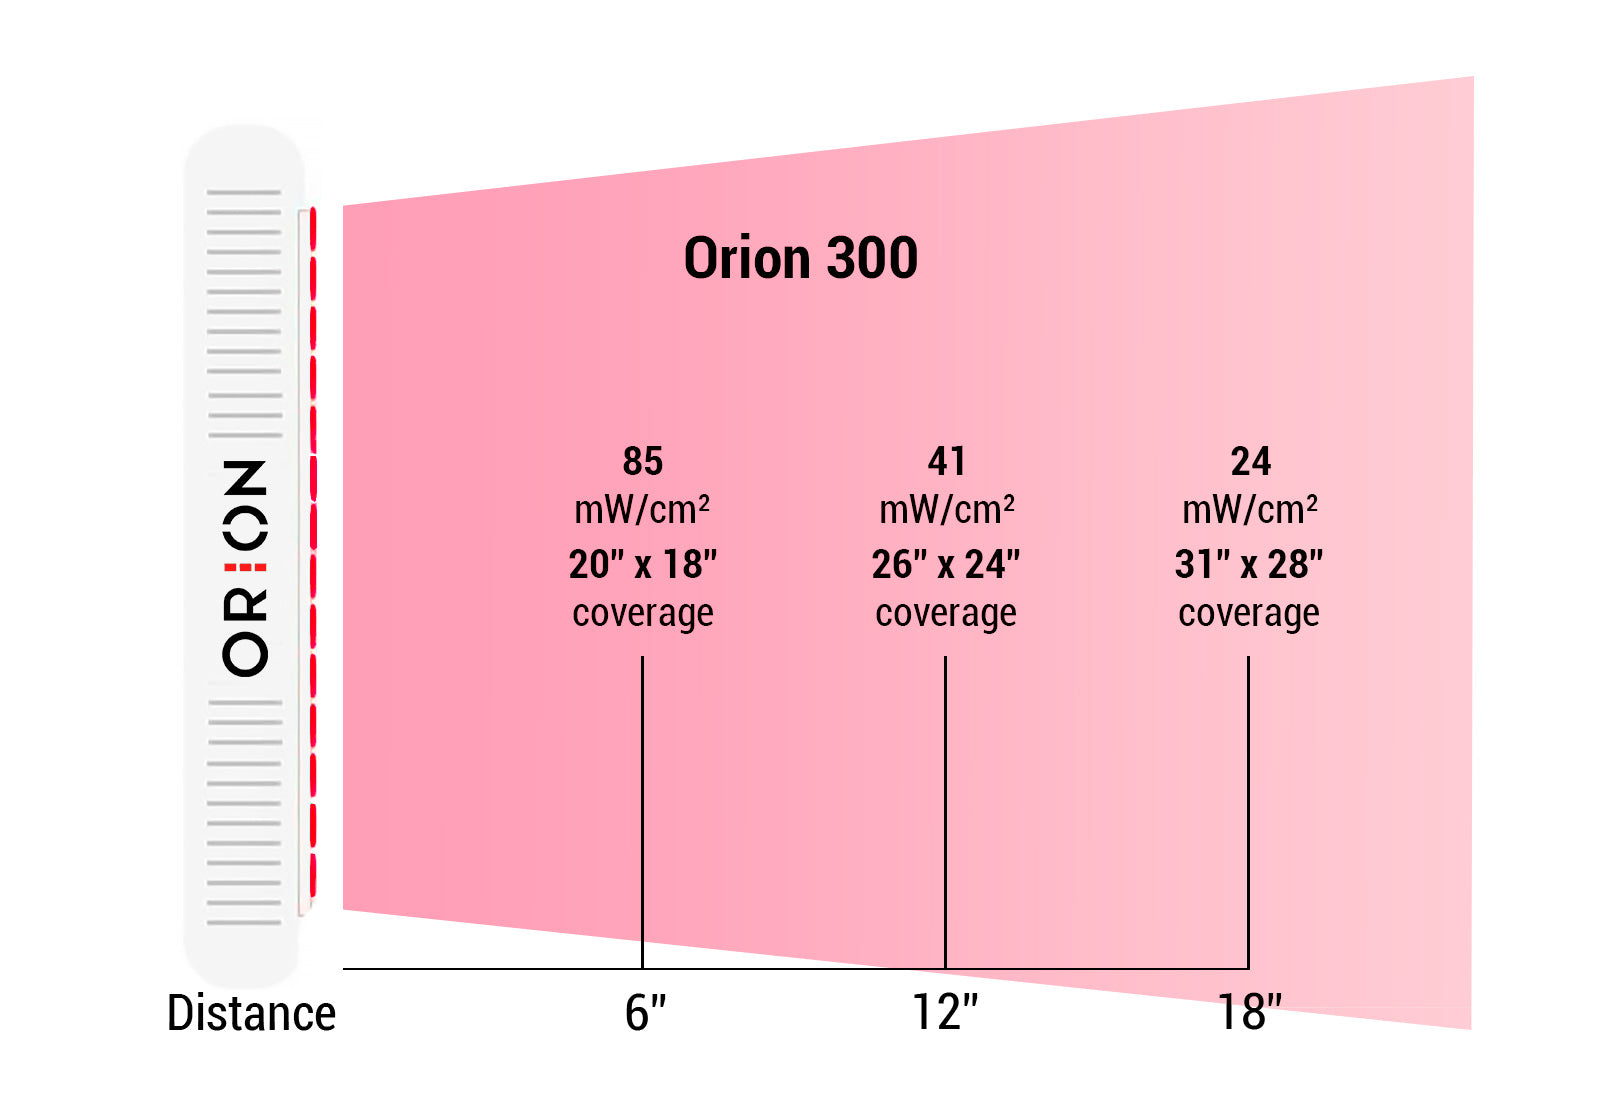 Orion 300 Irradiance levels | Orion Red Light Therapy